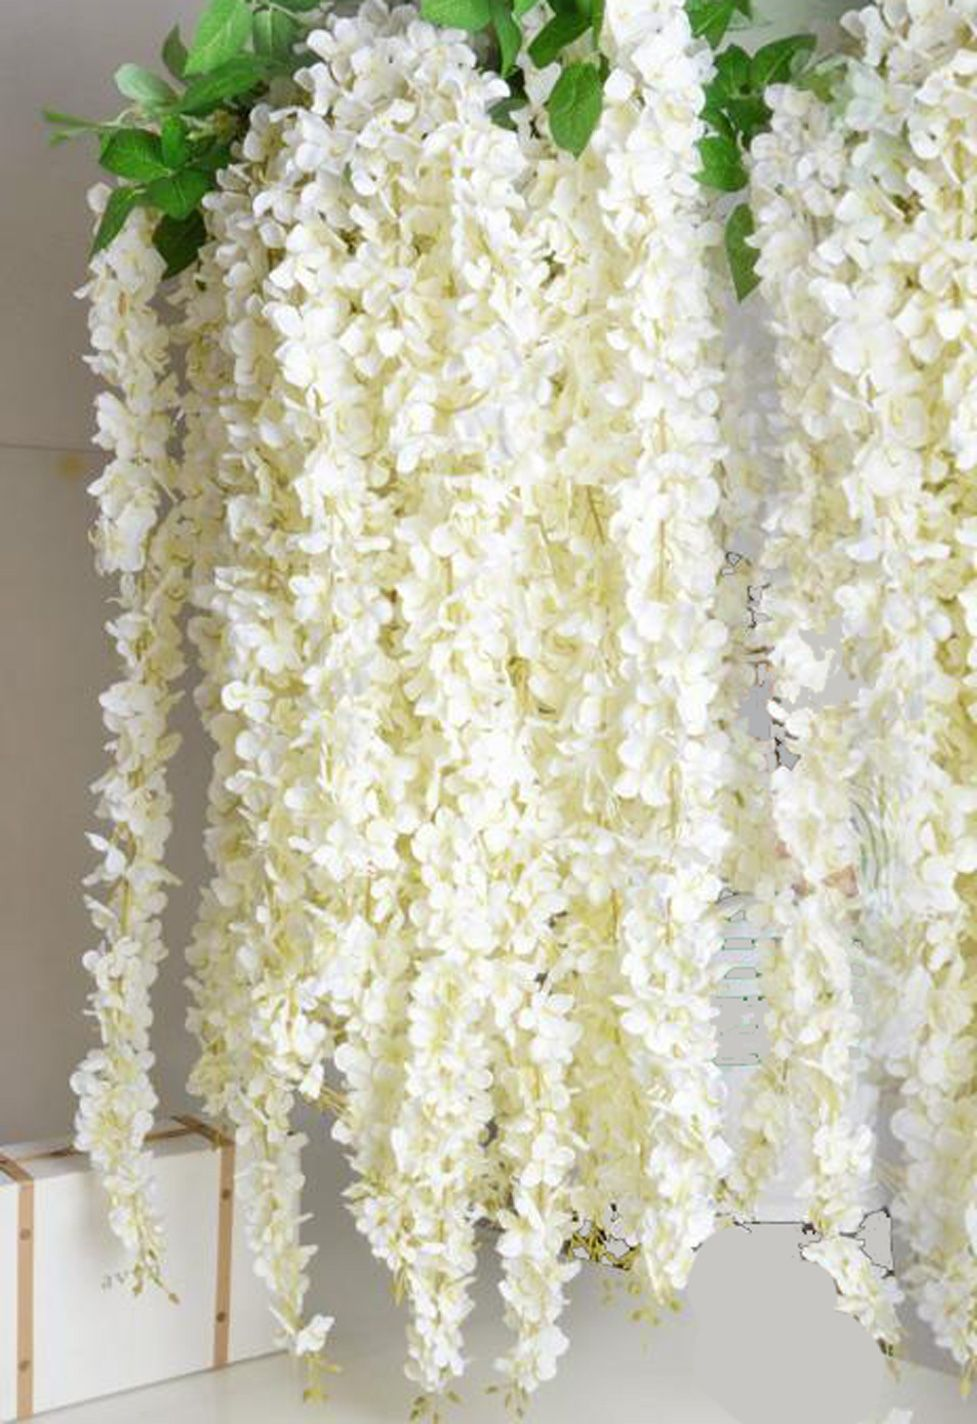 Plumeria frangipani silk flower garland cream 7 long bendable popular for using in hawaiian leis the striking beauty of plumeria flowers has been captured in our new 7 foot long cream colored garland izmirmasajfo Images